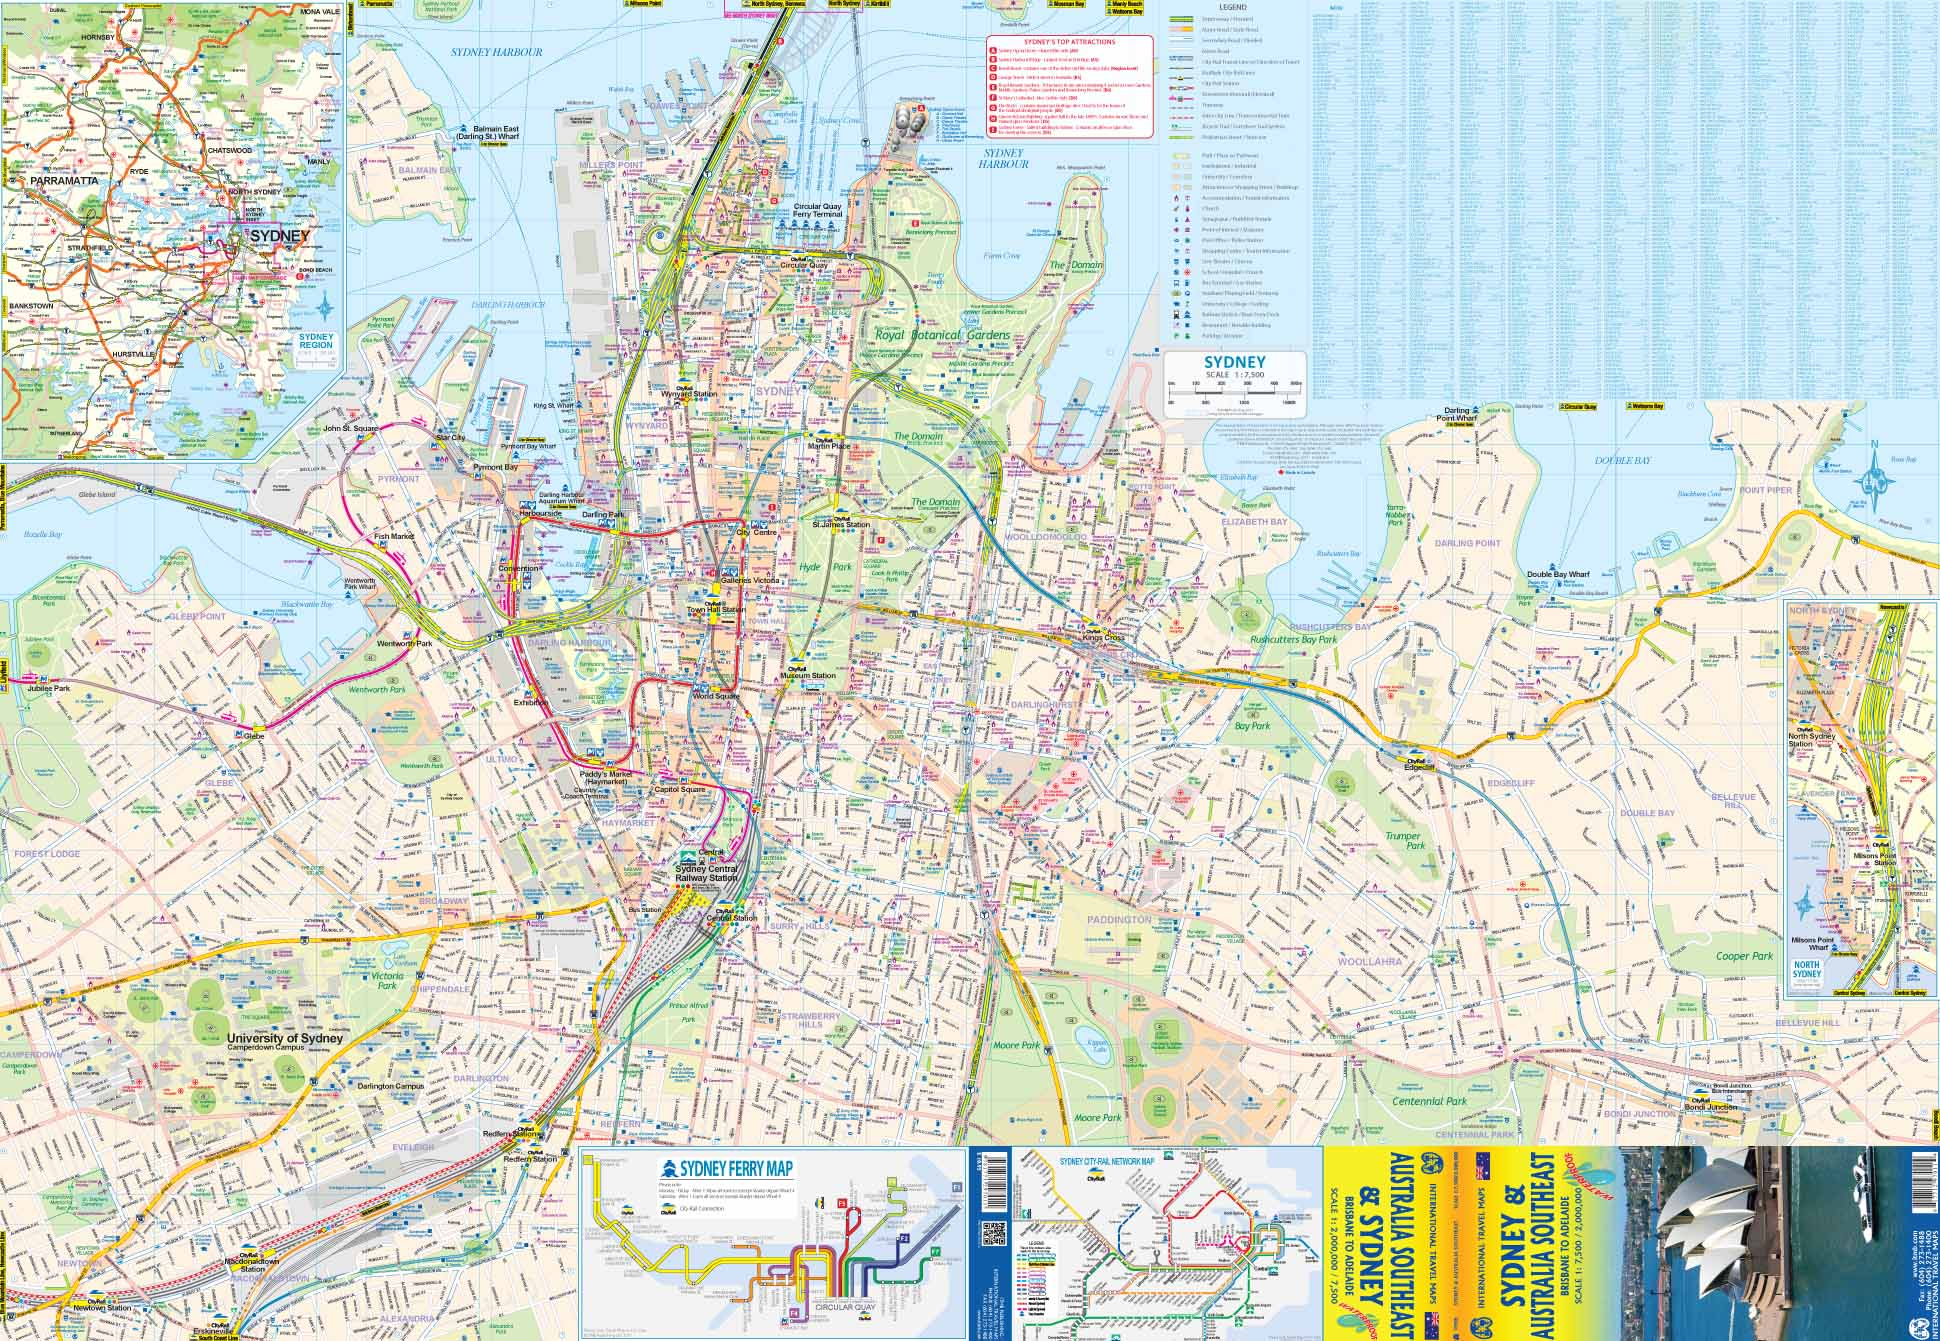 Map South East Australia.Maps For Travel City Maps Road Maps Guides Globes Topographic Maps